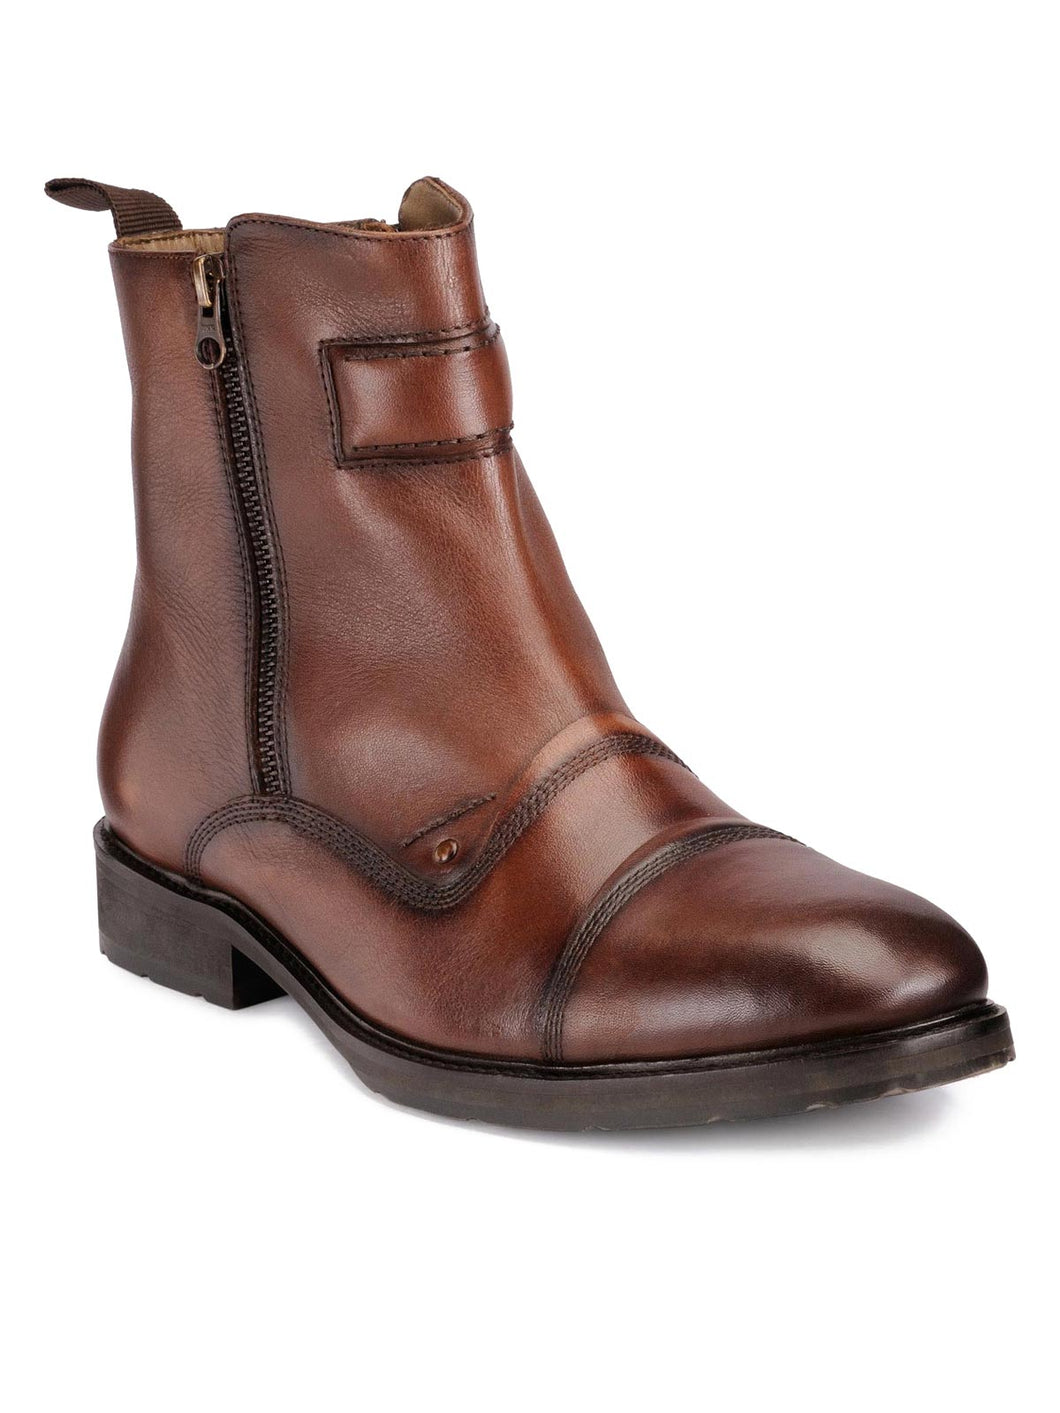 Teakwood Genuine Leather Boot Shoes